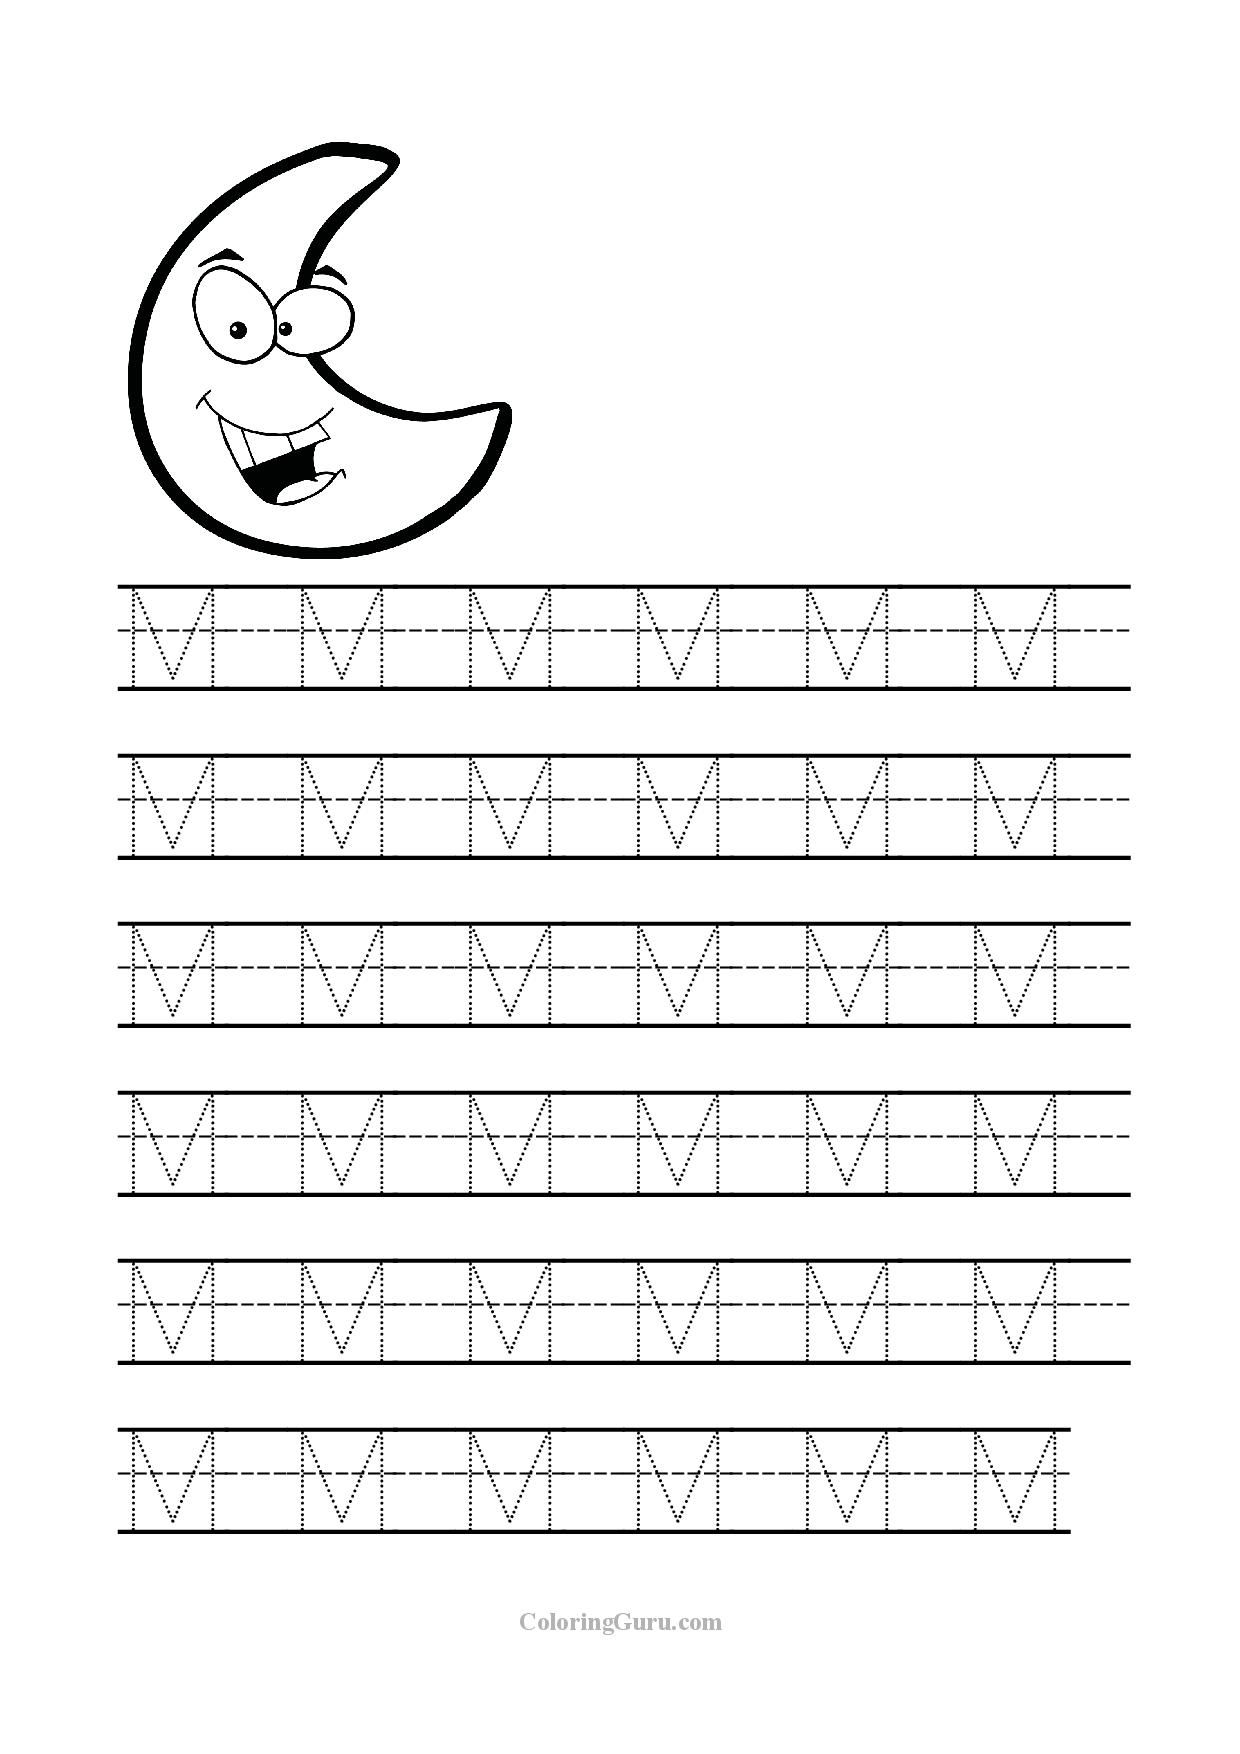 Worksheet Letters Preschool 78 best images about schrijven on pinterest preschool alphabet printable letters and tracing worksheets